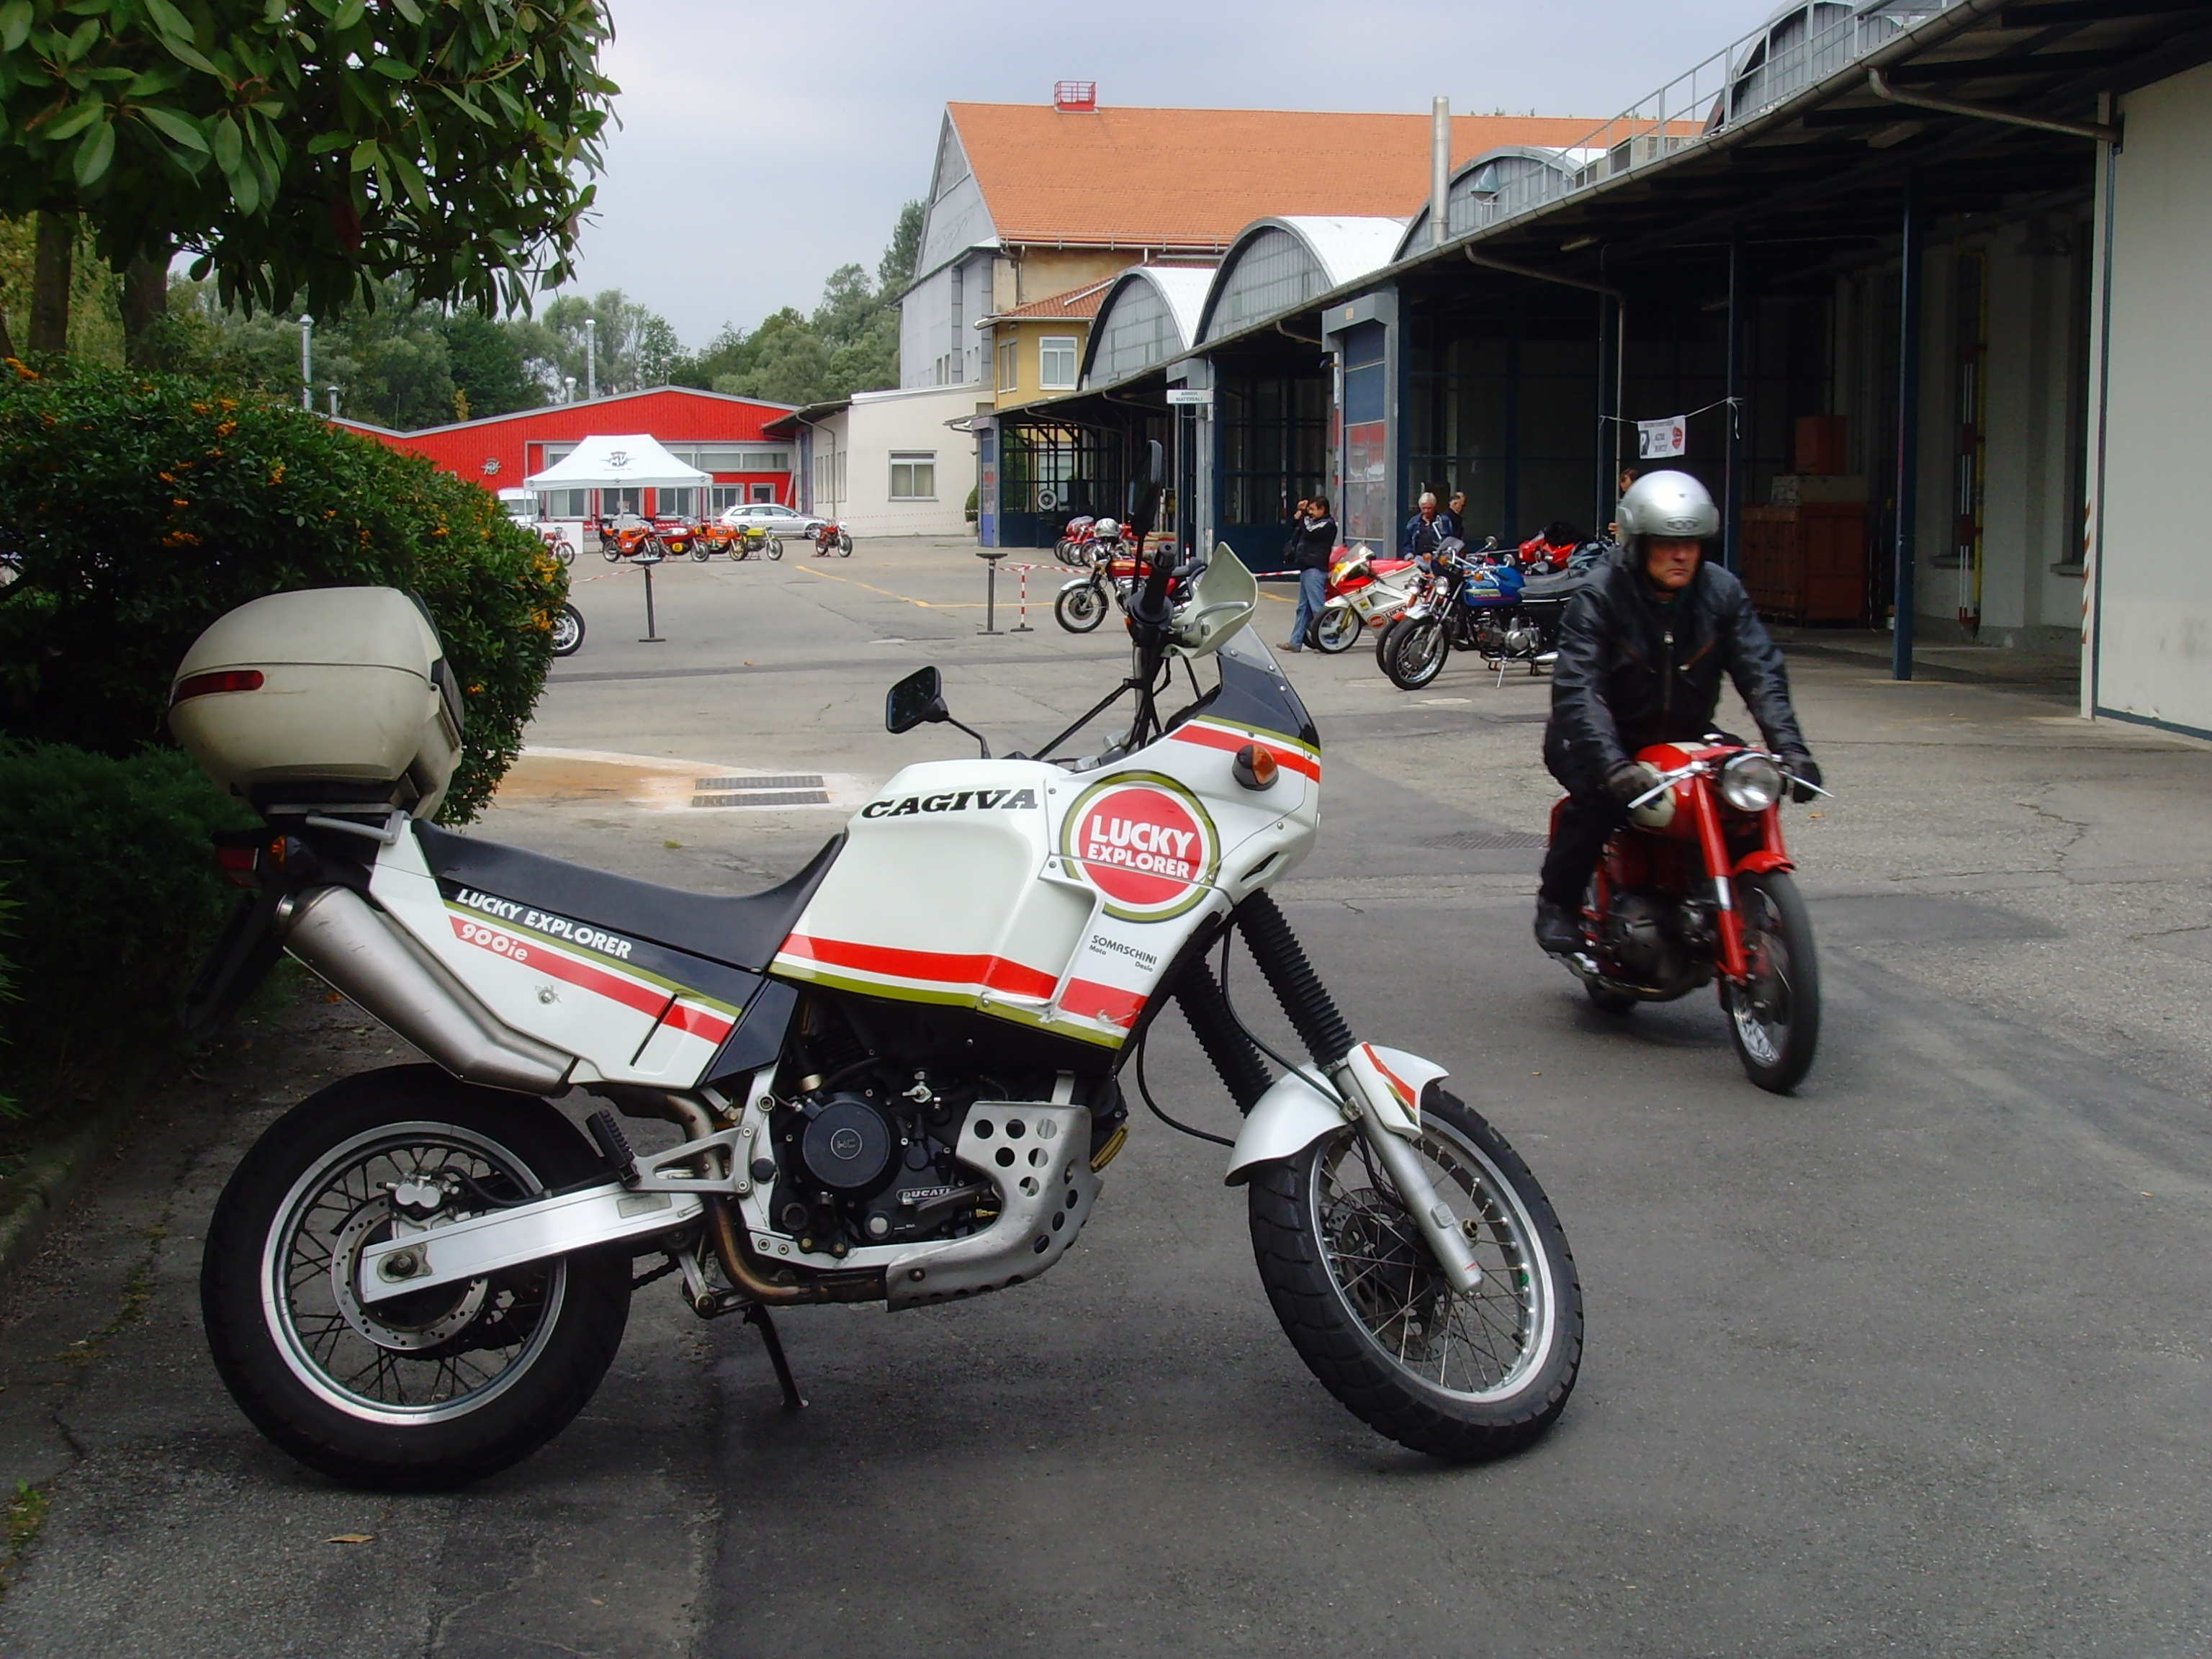 Cagiva Elefant 900 IE 1990 images #68836